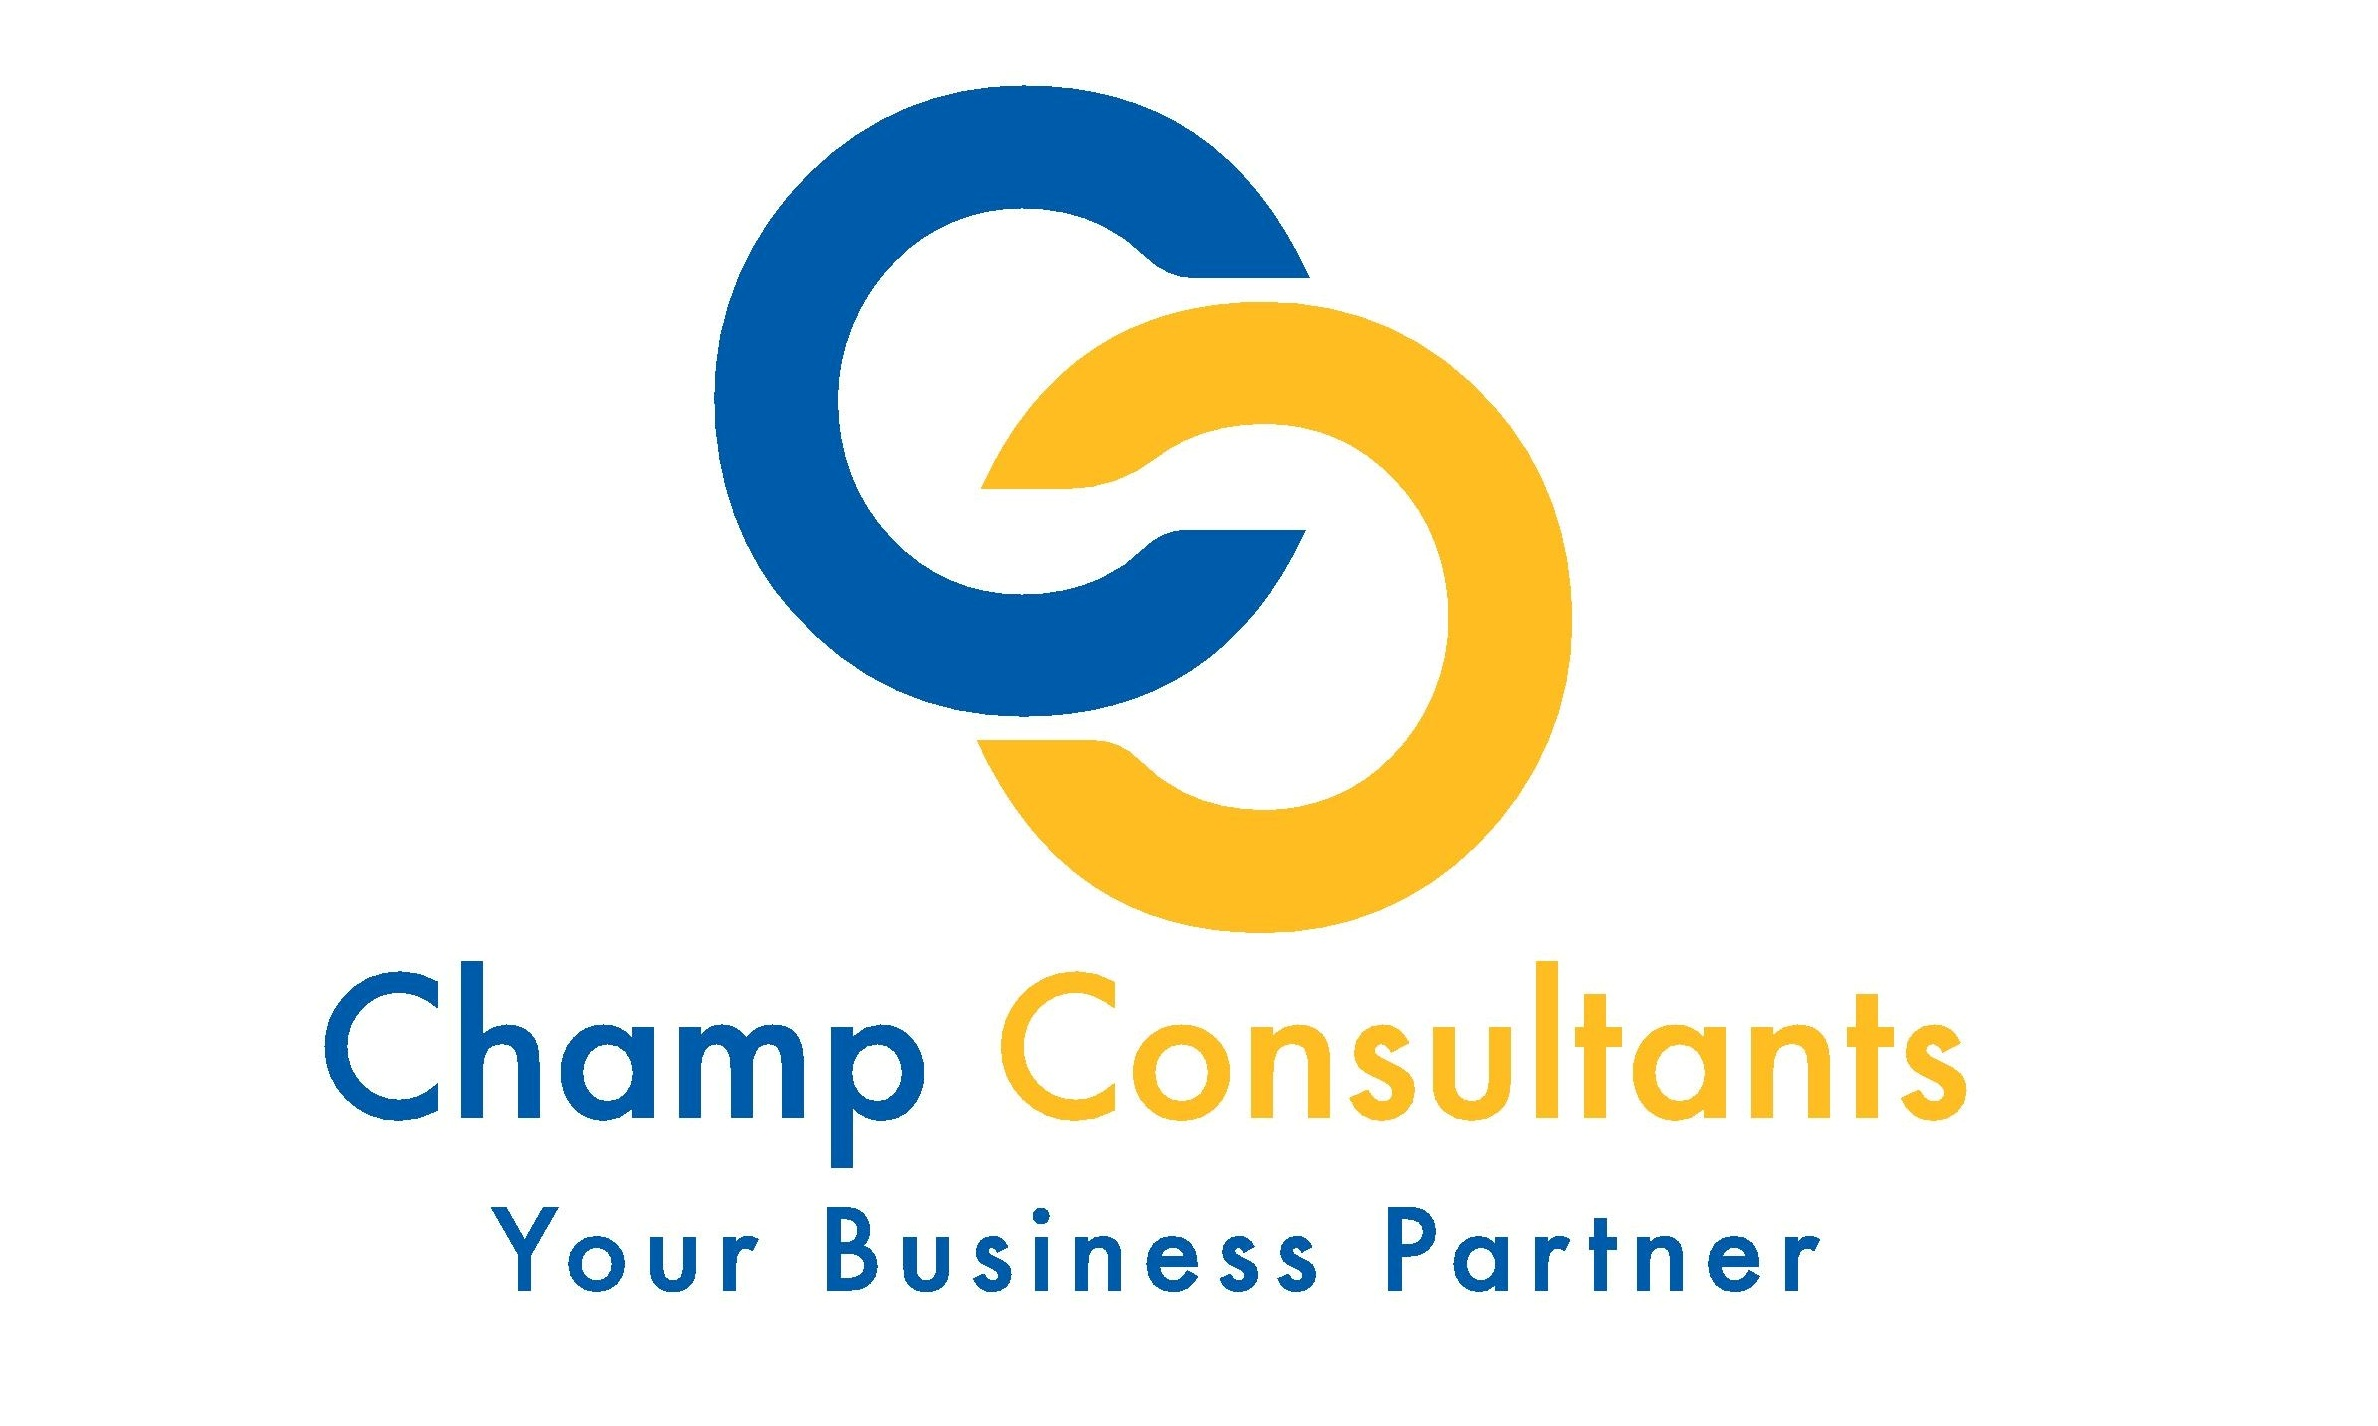 Champ Consultants logo 1